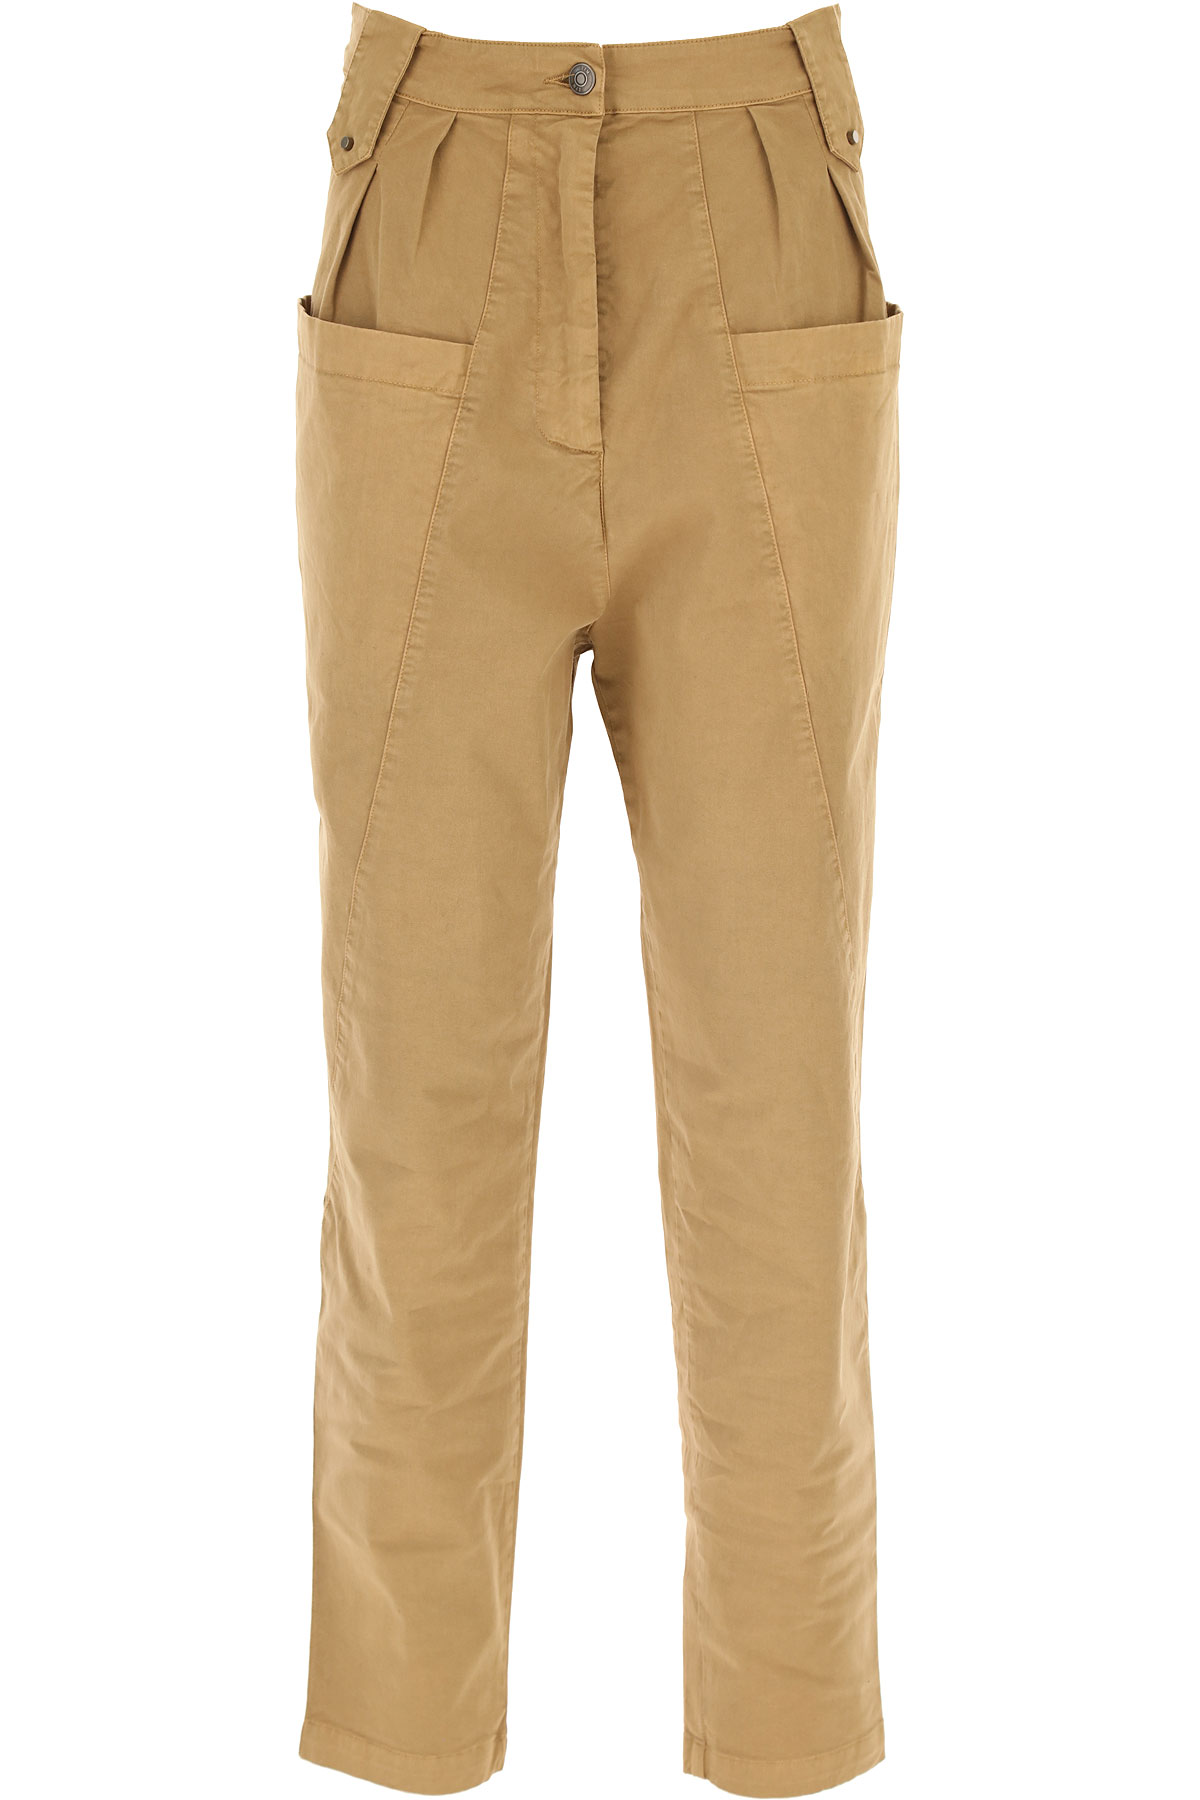 8 PM Pants for Women On Sale, Brown, Cotton, 2019, 4 6 8